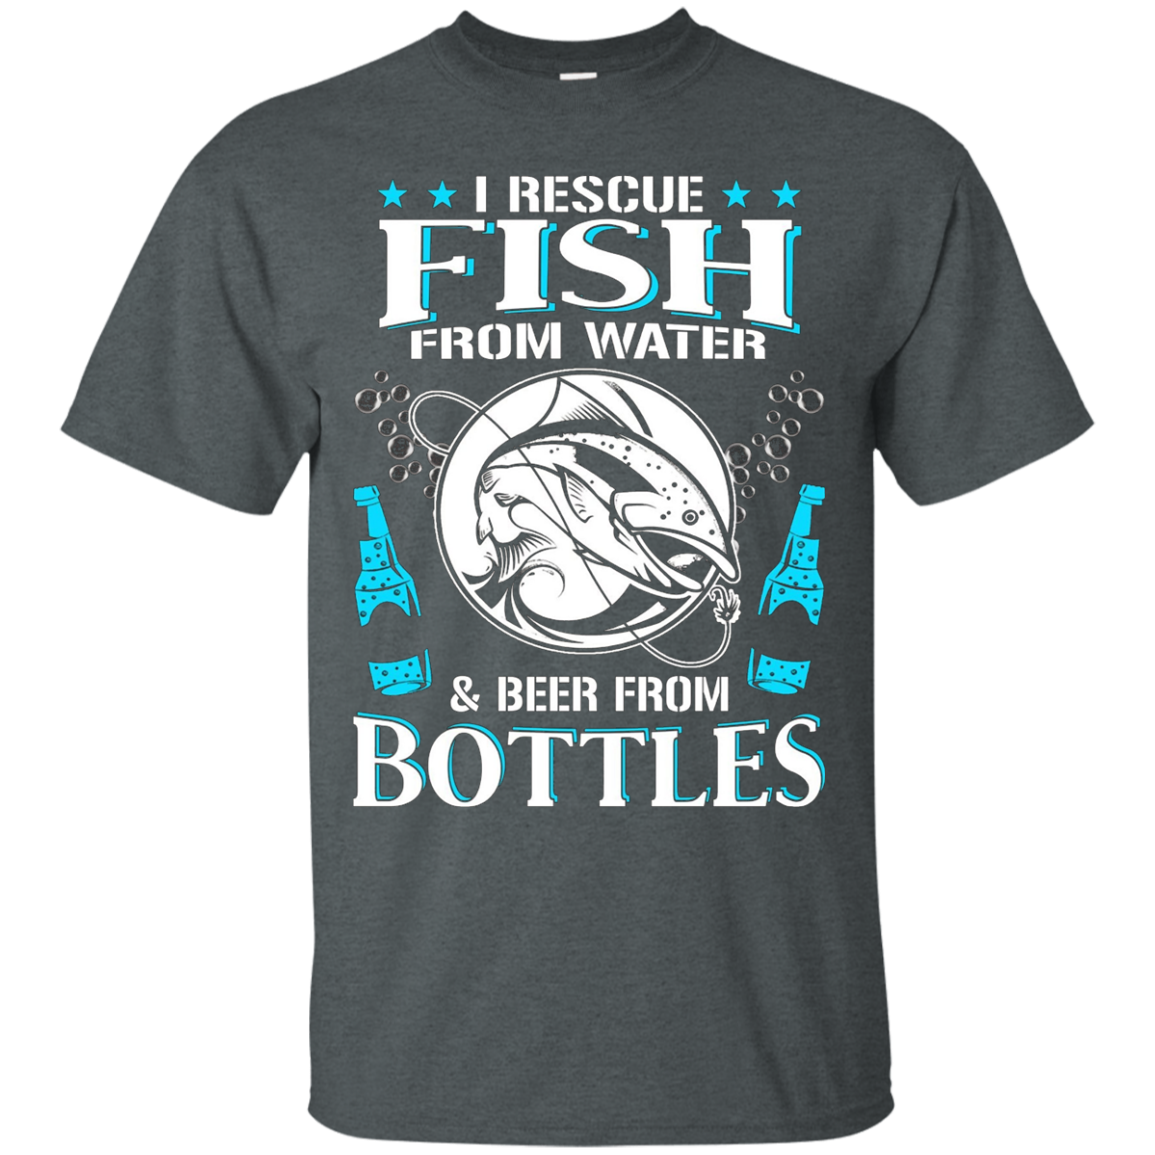 I Rescue Fish from Water and Beer from Bottles shirt - Funny